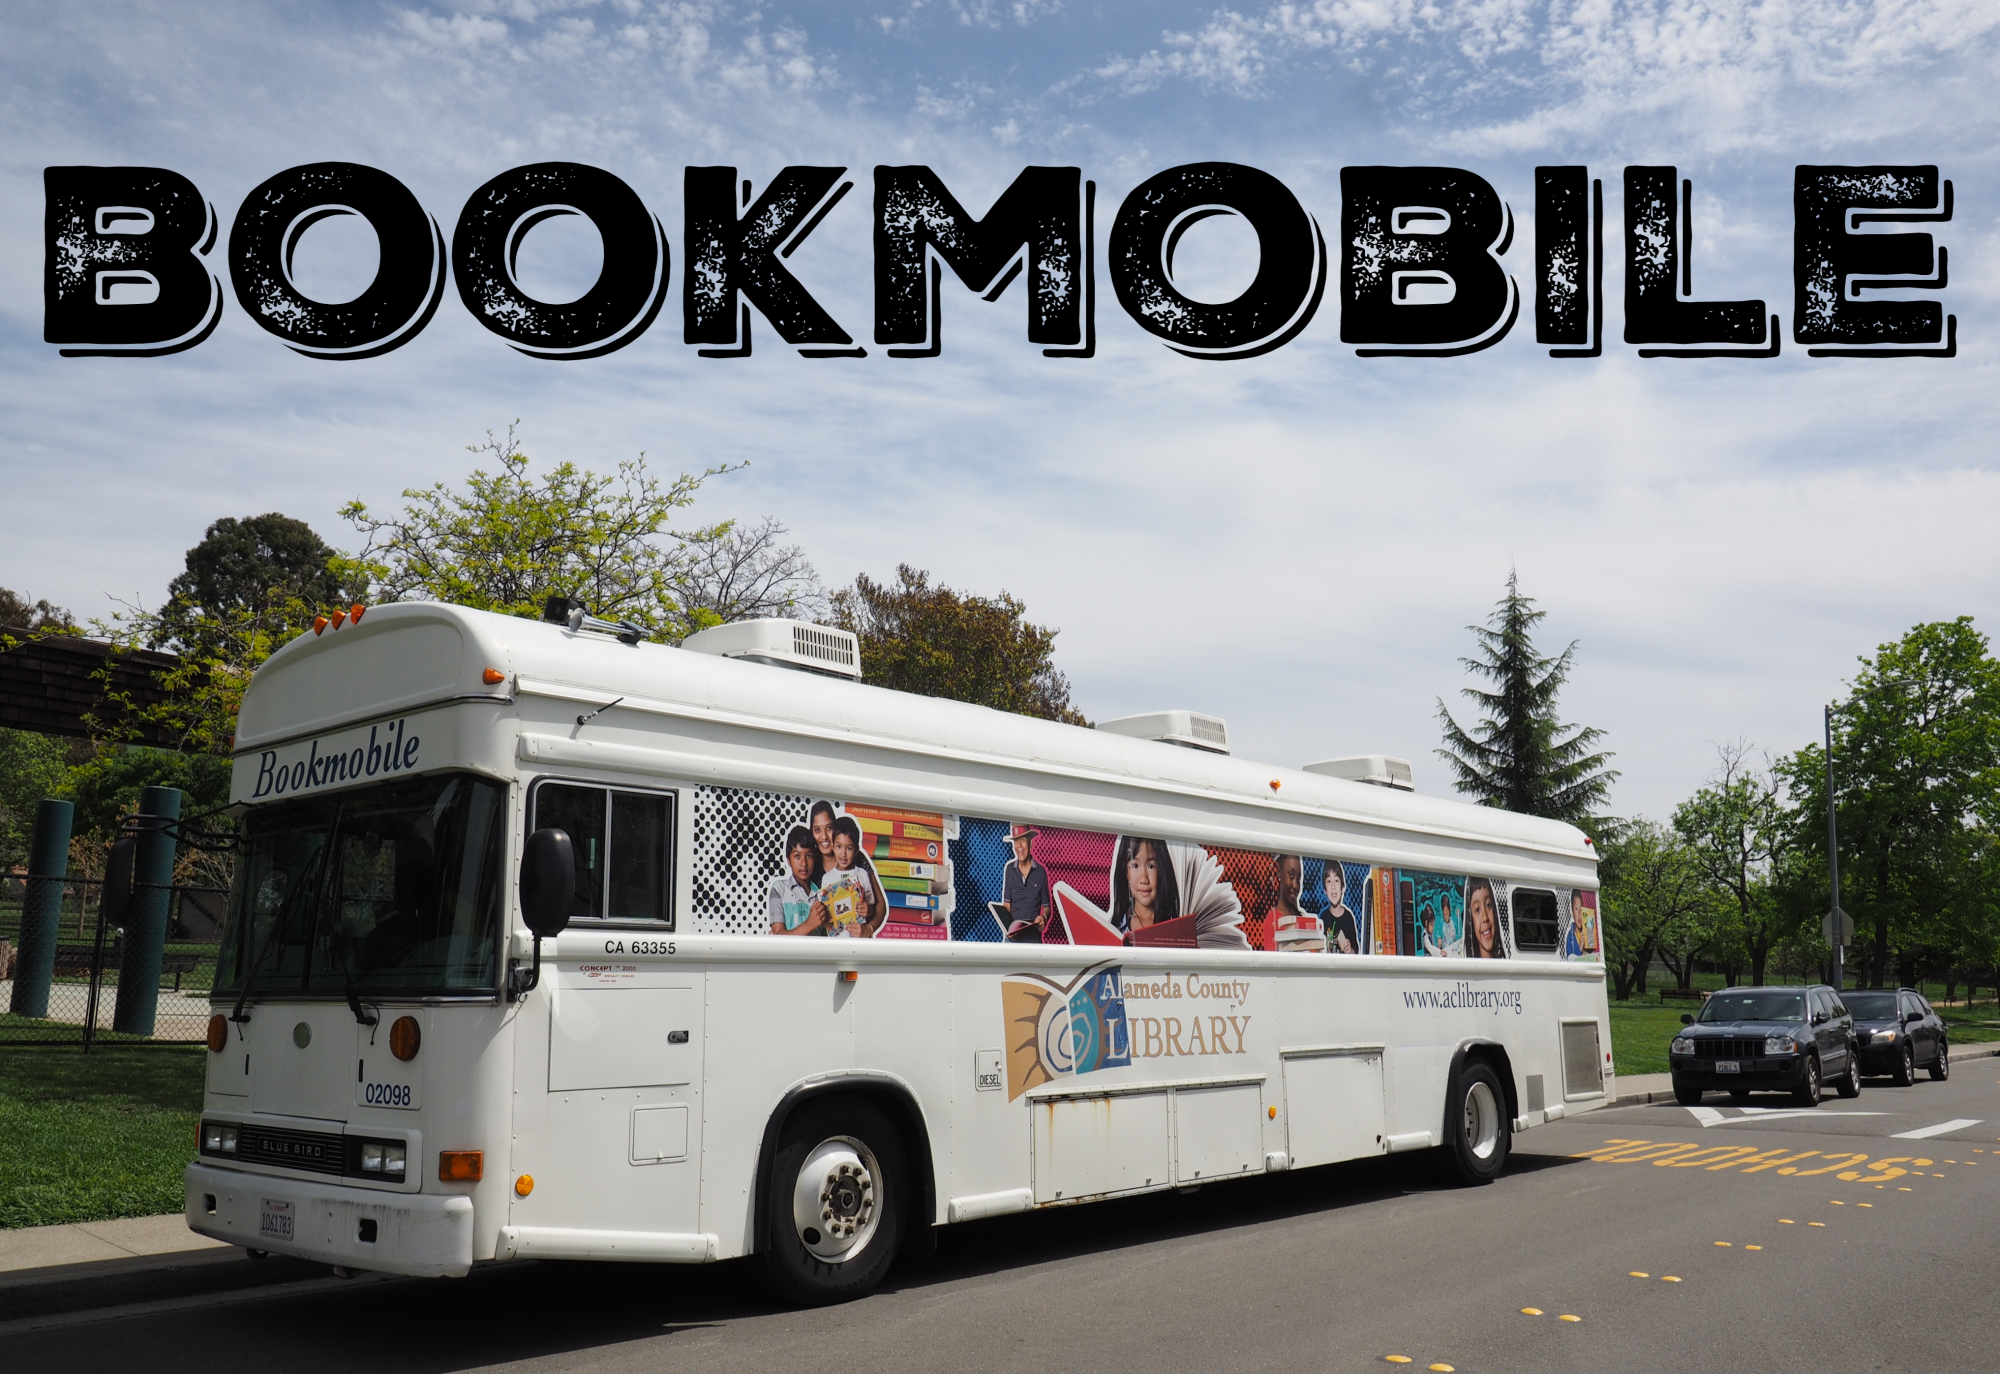 Del Rey School - bookmobile stop